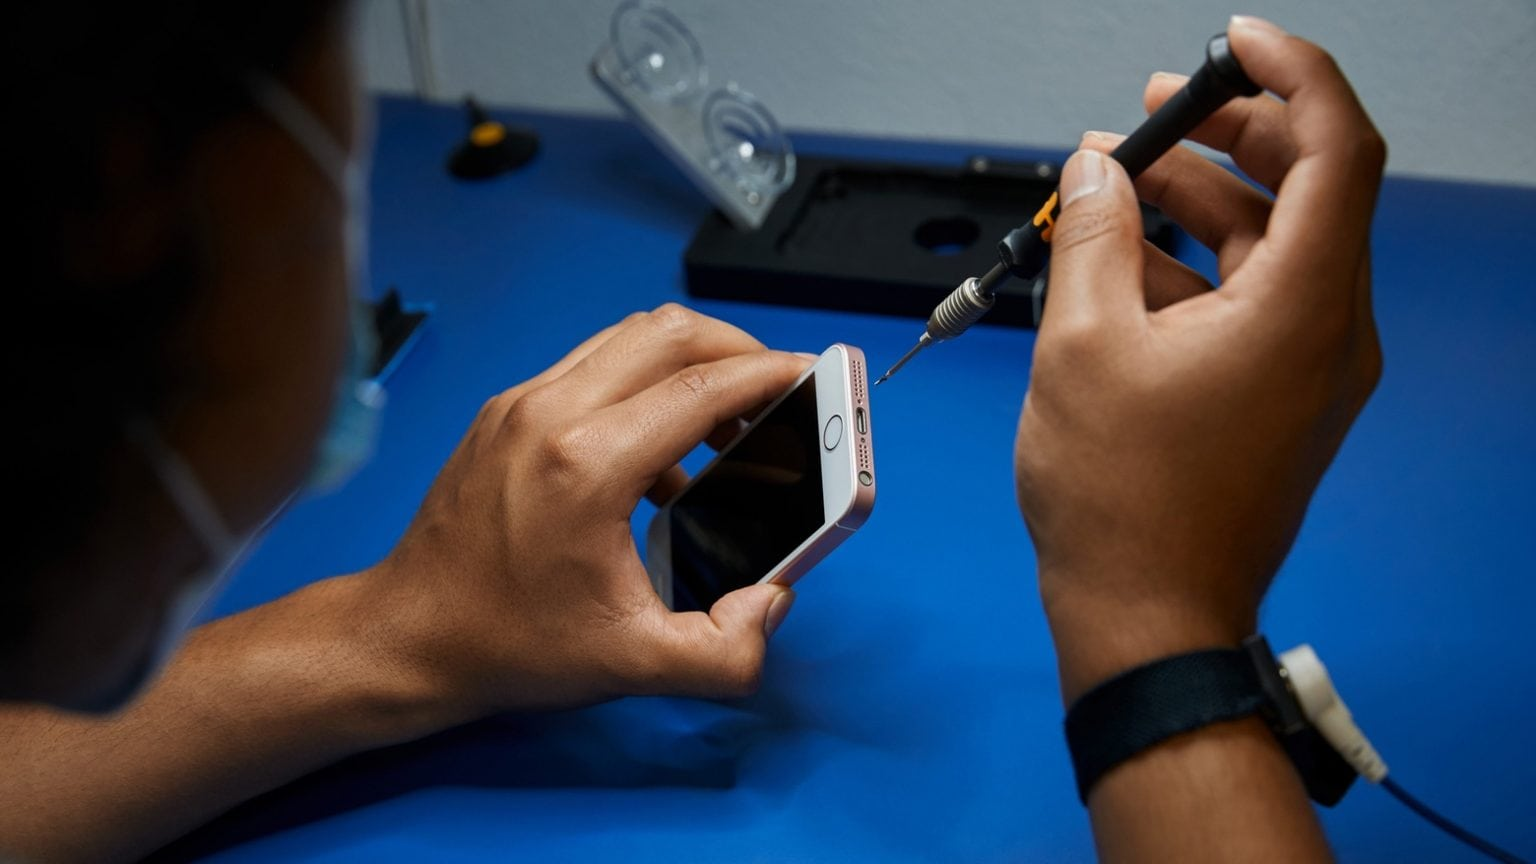 It'll soon be easier to find reliable iPhone, iPad or Mac repairs.